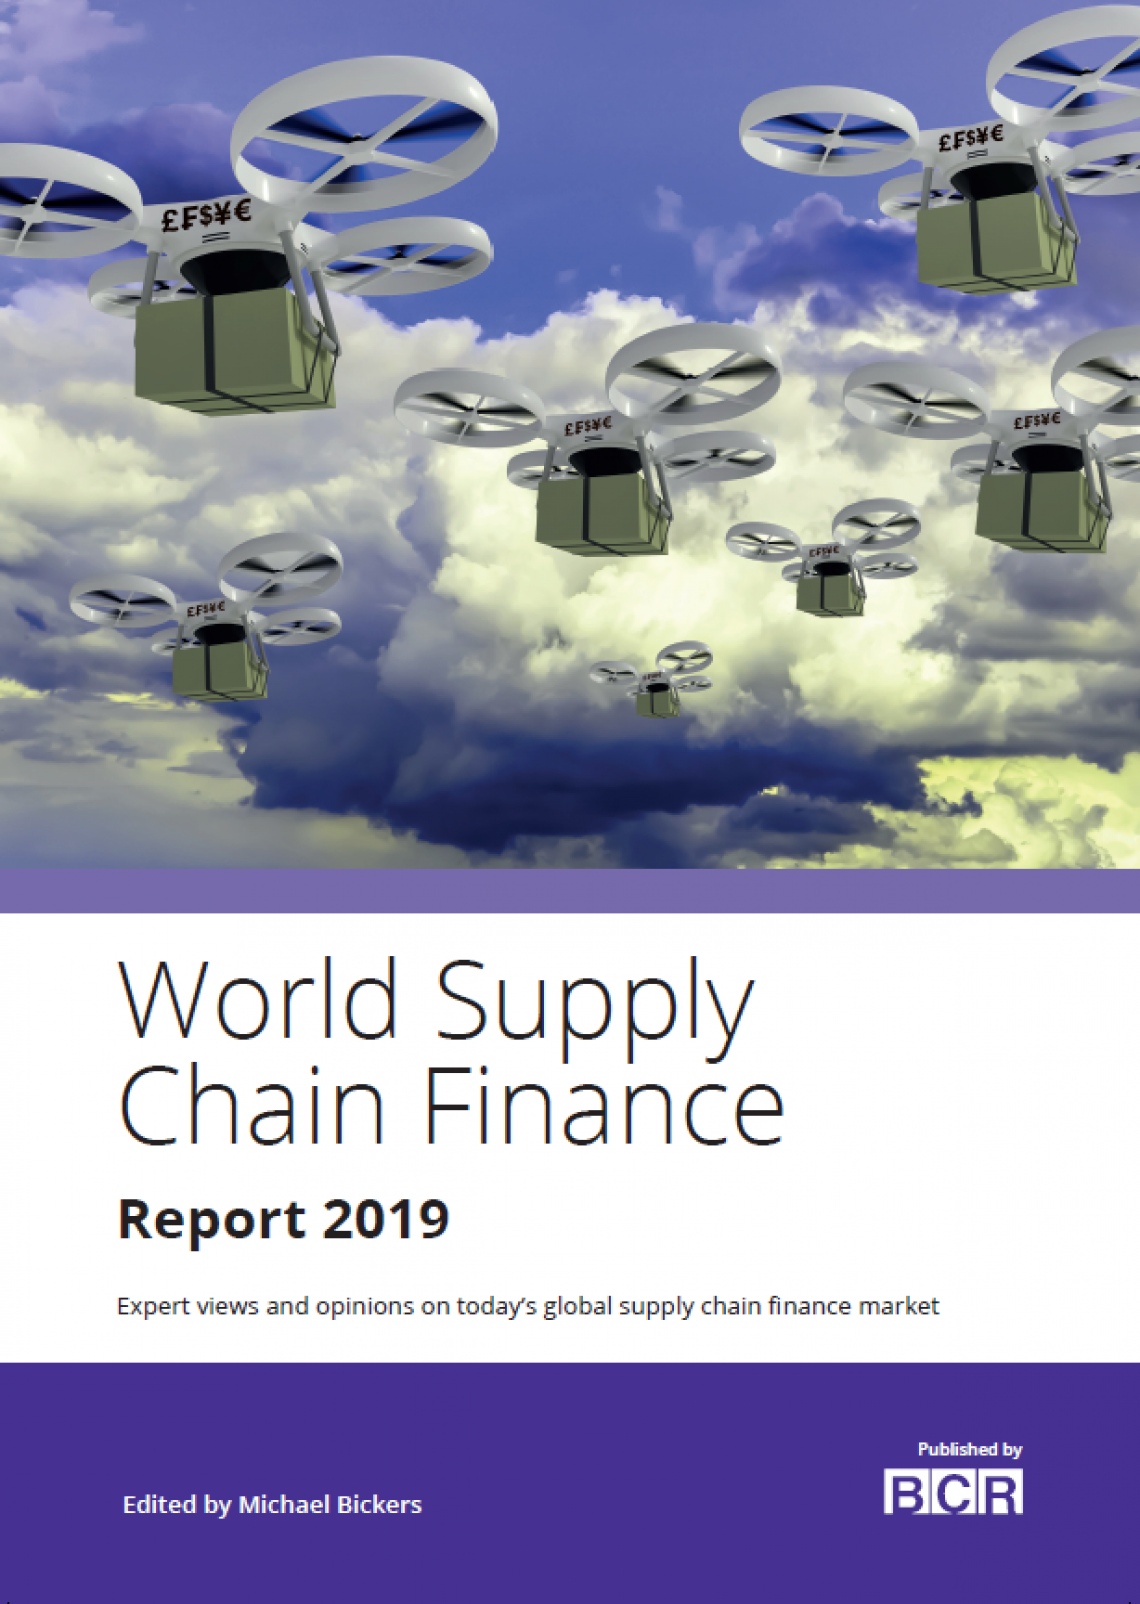 World Supply Chain Finance Report 2019 | BCR Publishing